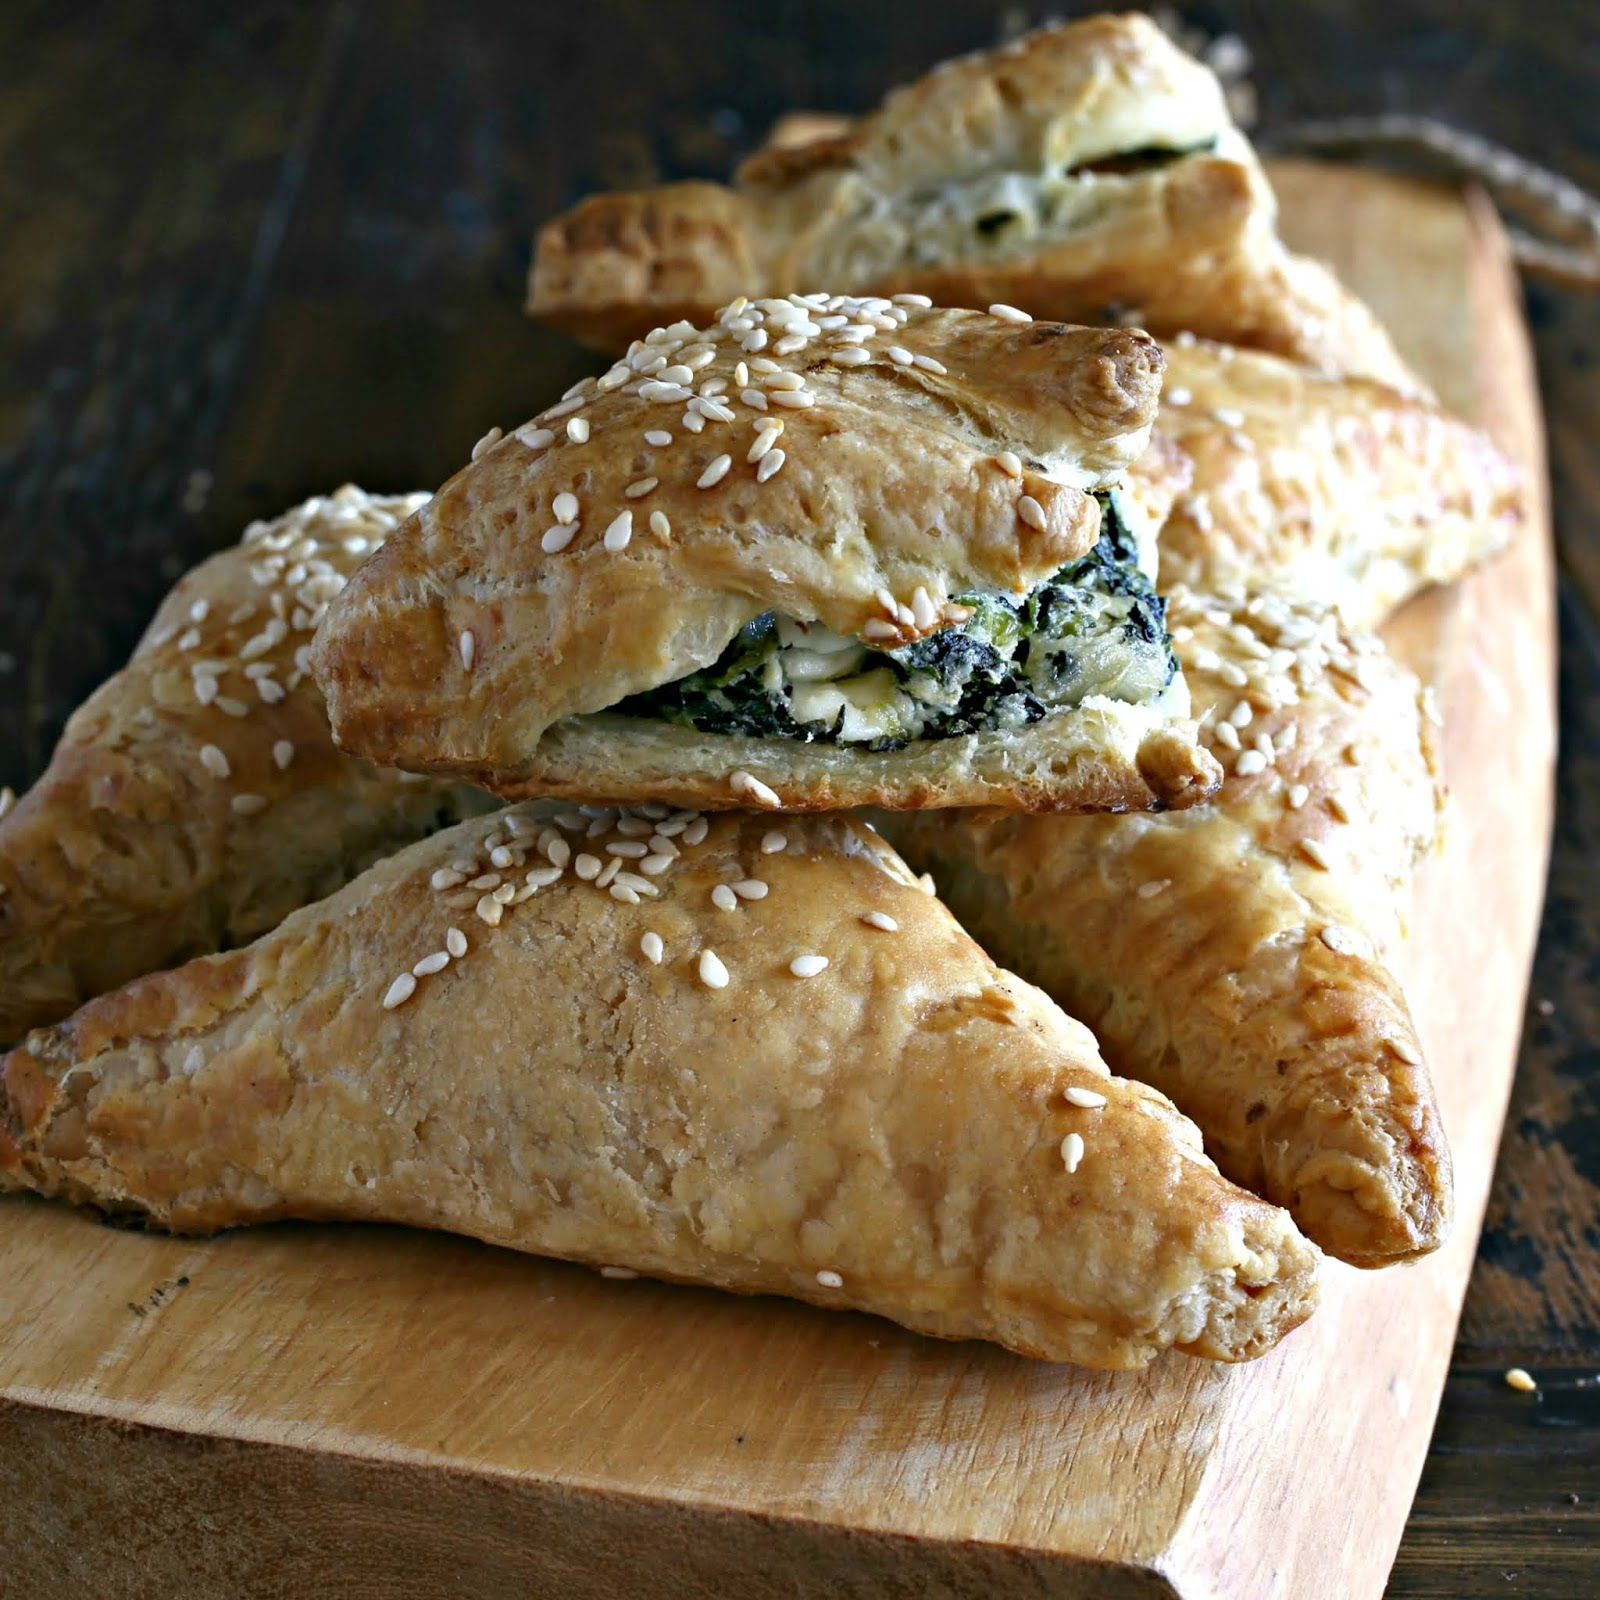 Savory puff pastry filled with spinach and feta cheese.